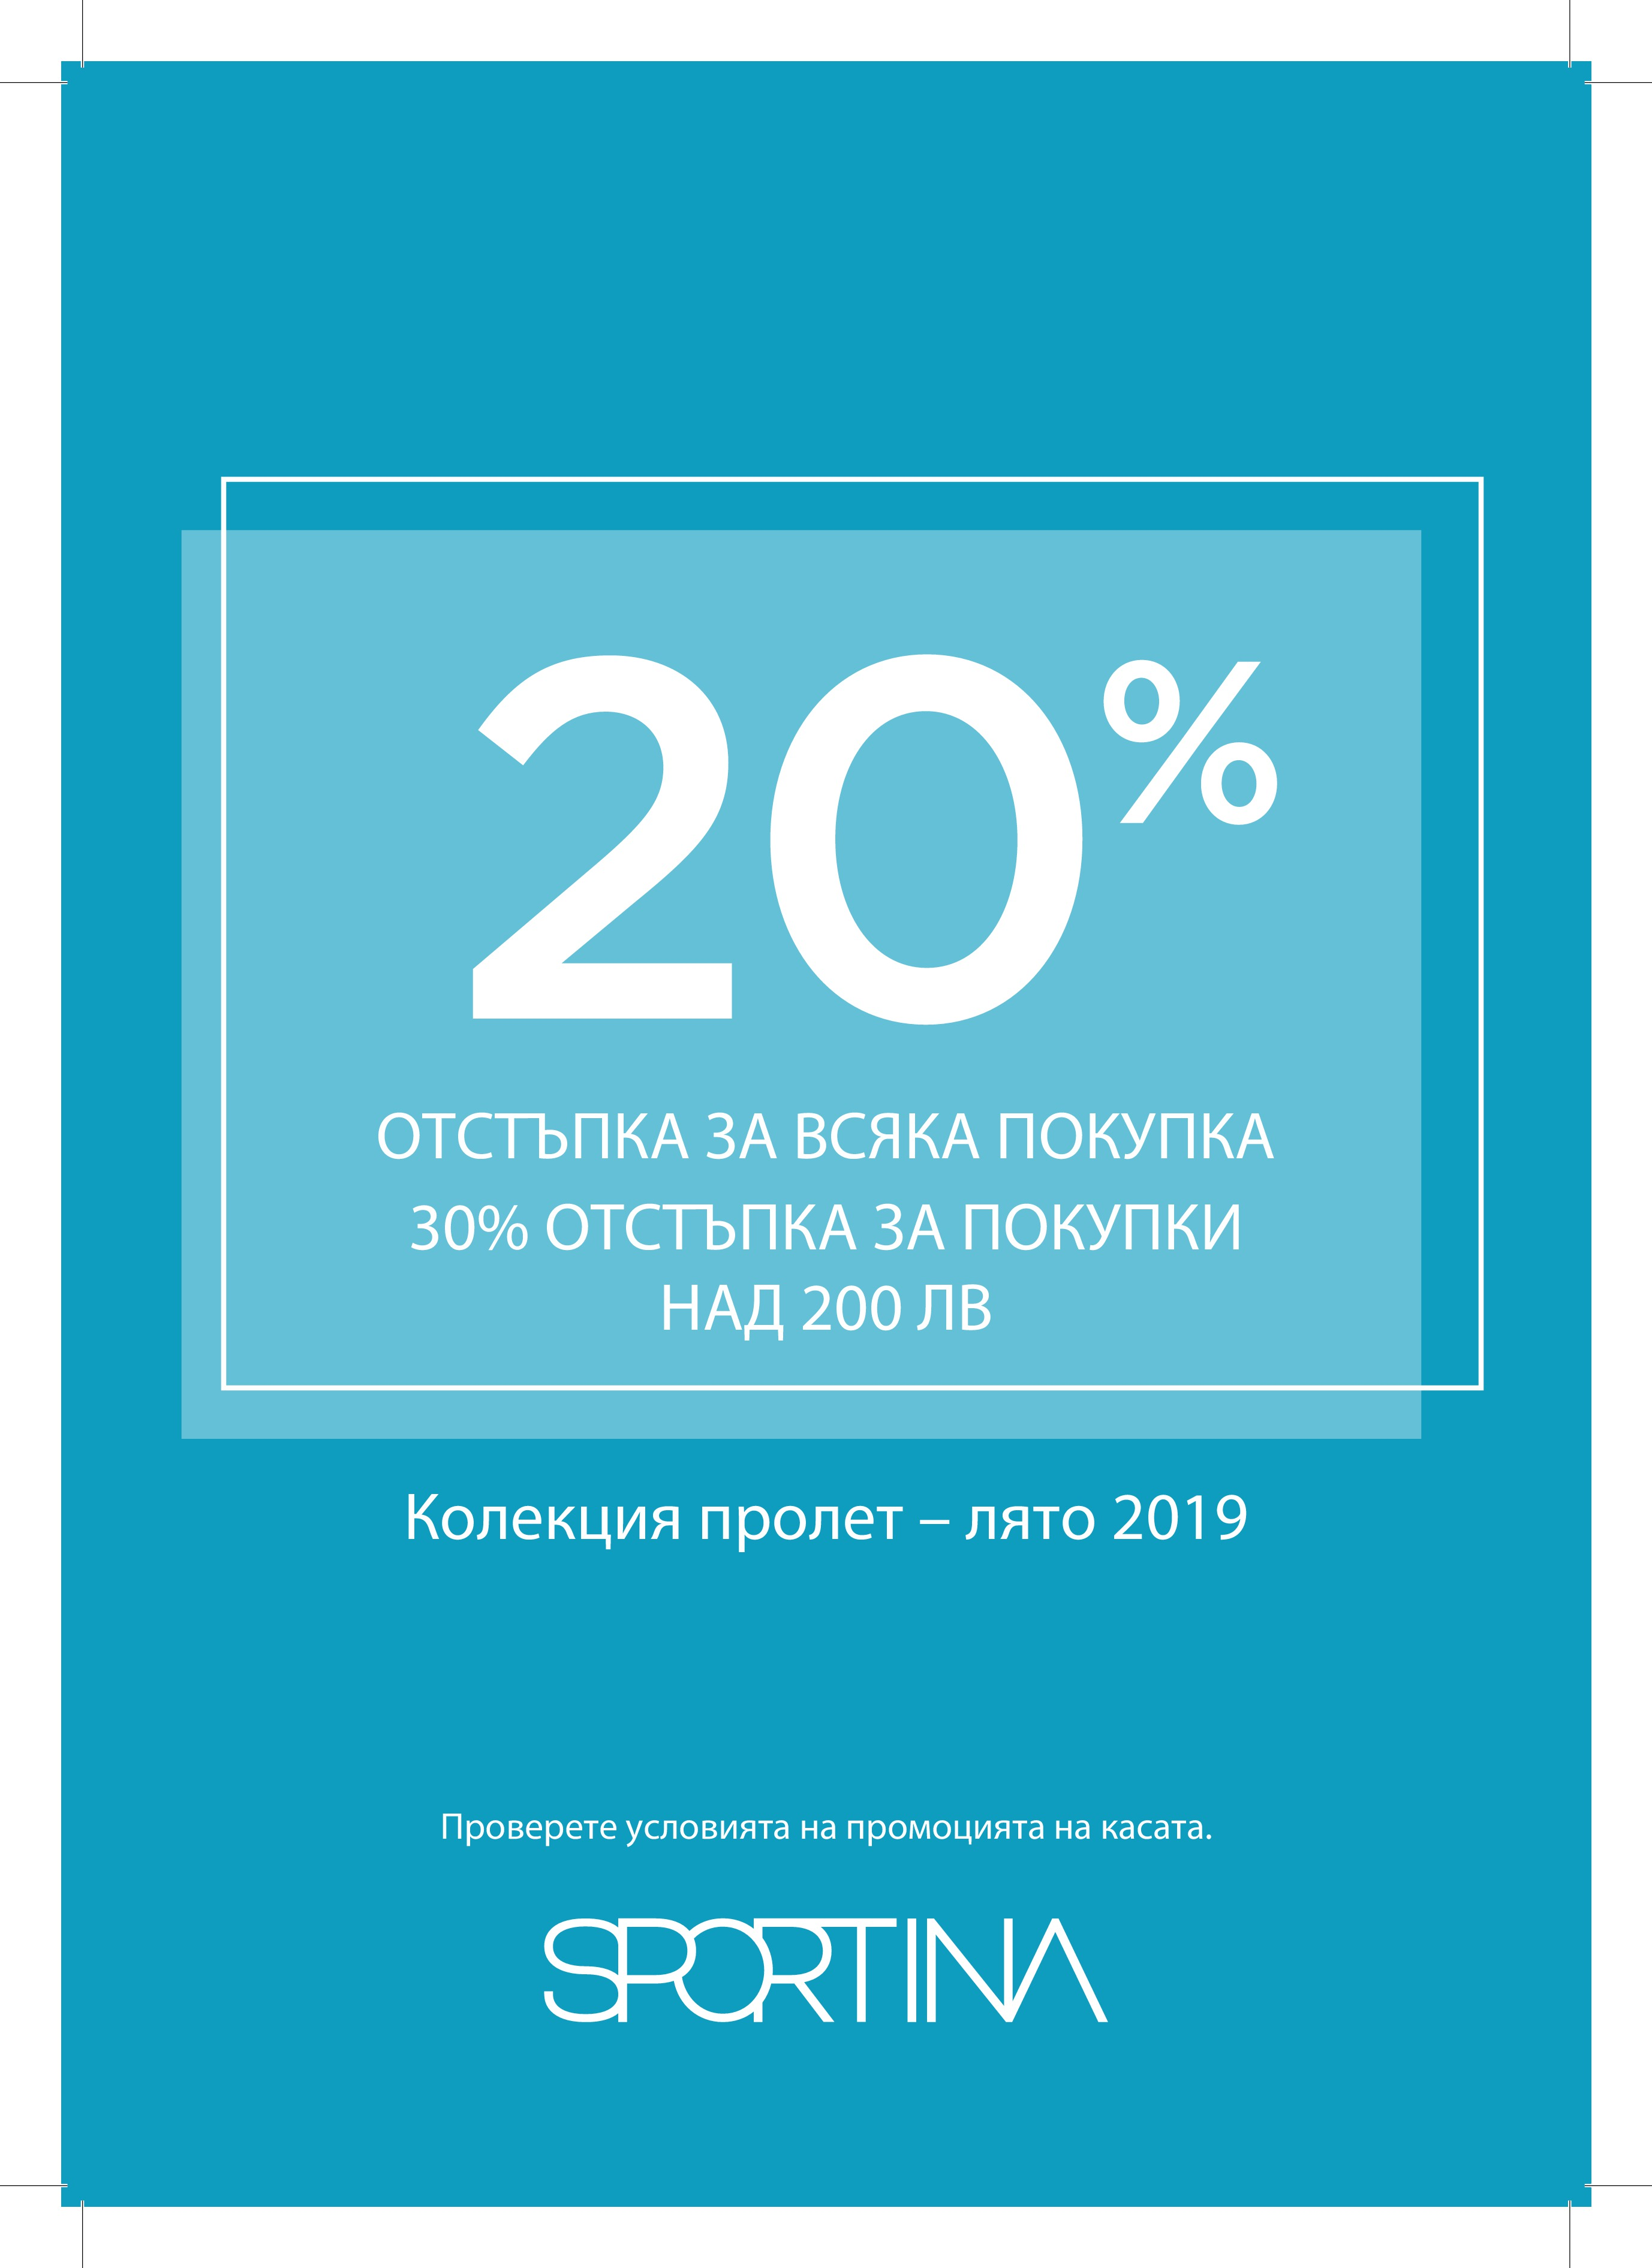 Take advantage of this special offer from SPORTINA!